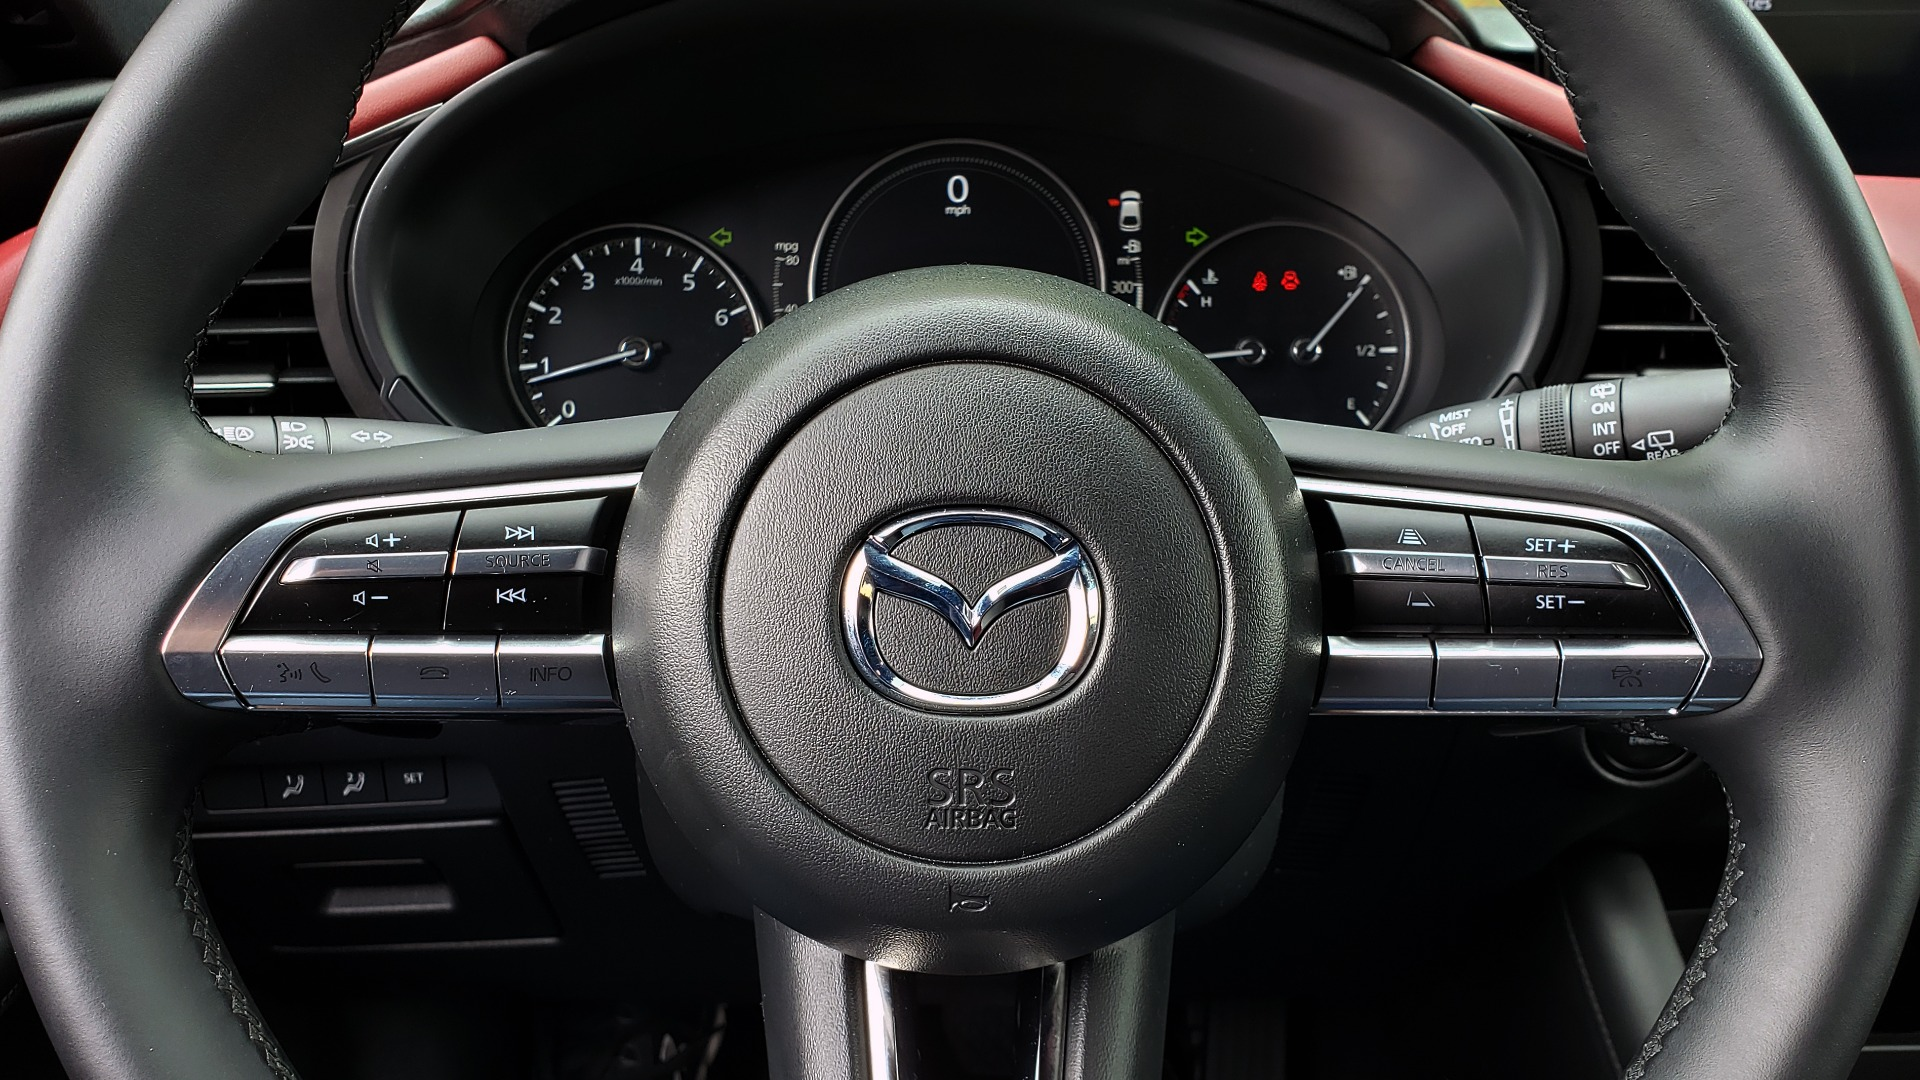 Used 2019 Mazda MAZDA3 HATCHBACK PREMIUM PKG / AUTO / 18IN BLACK ALLOY WHEELS / BOSE / LEATHER for sale Sold at Formula Imports in Charlotte NC 28227 35